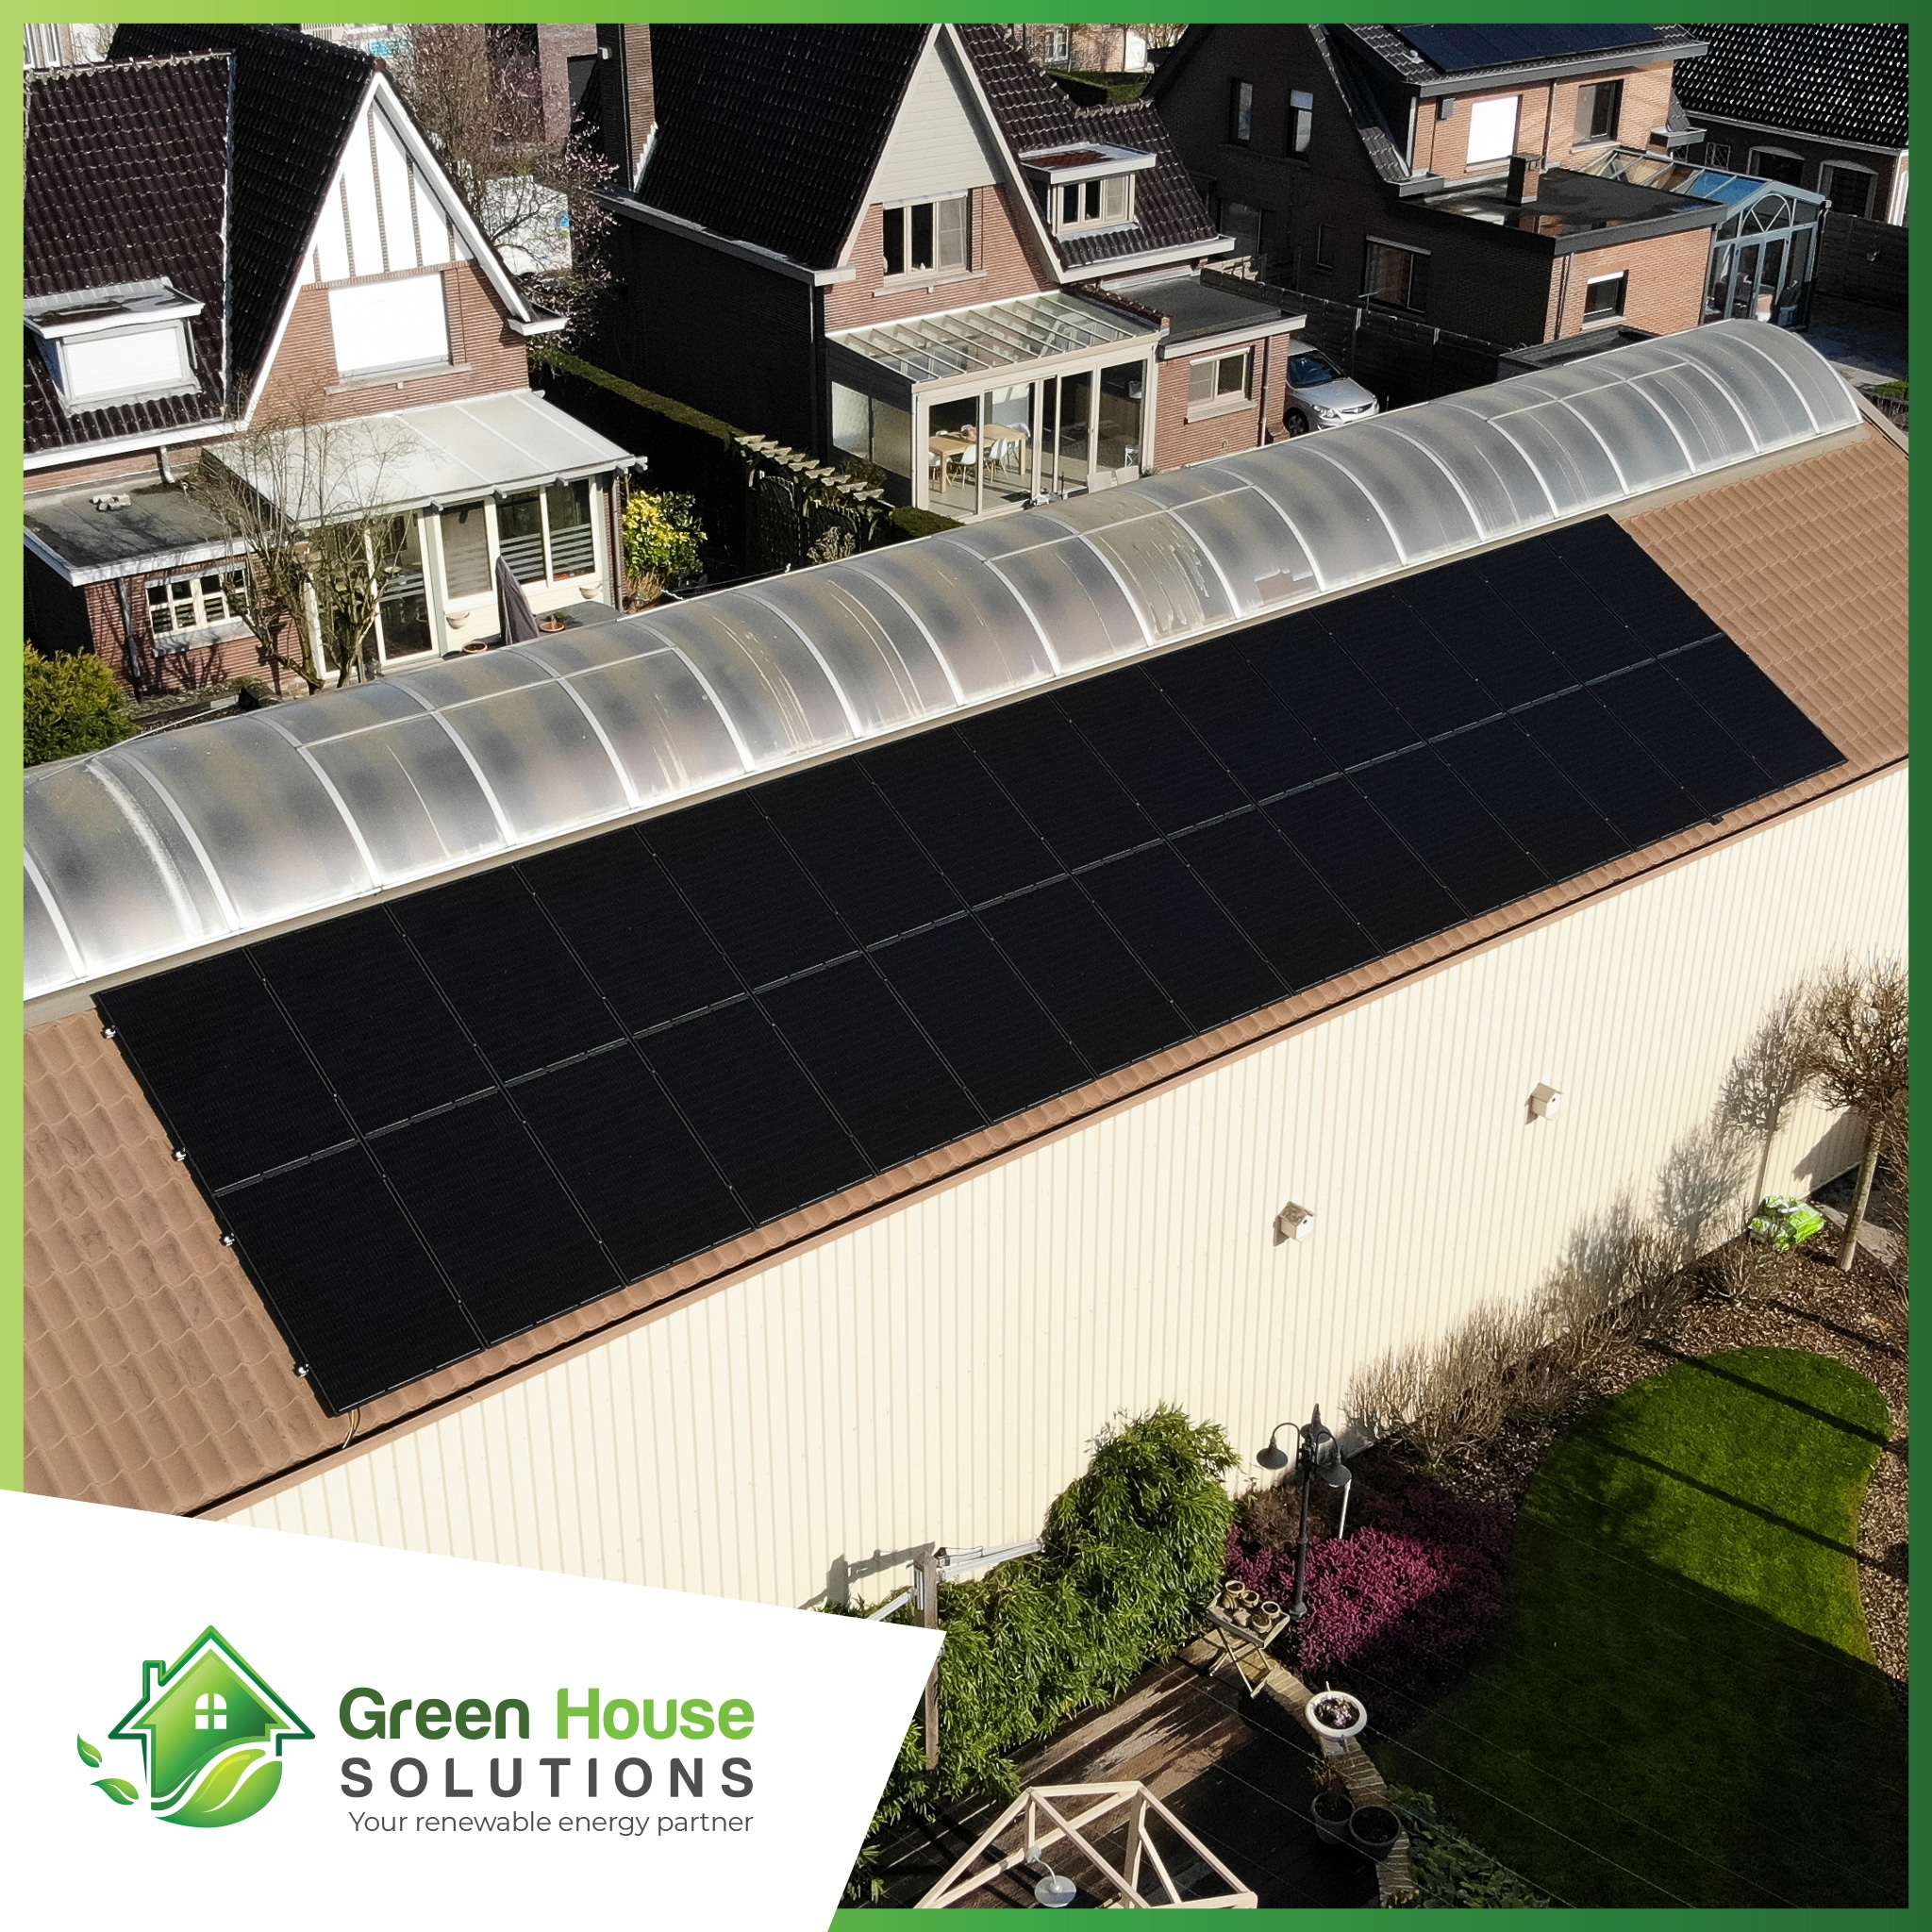 Green House Solutions 2048x2048 Social Media Template 0000051